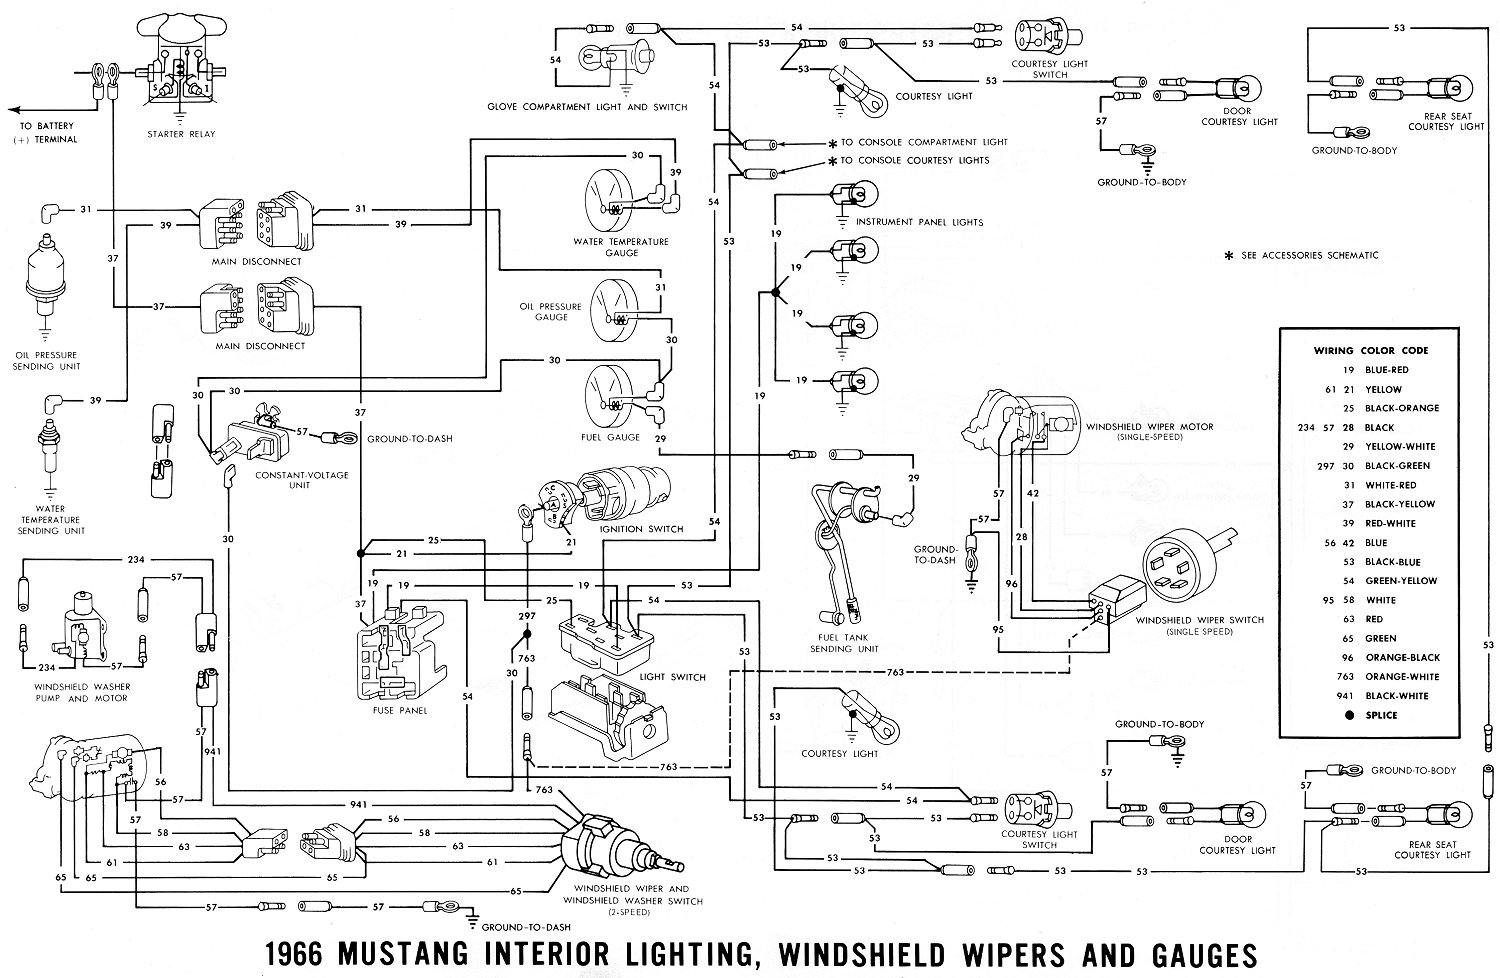 1966 mustang wiring diagrams average joe restoration 66 Mustang Blower Motor Wiring Diagram